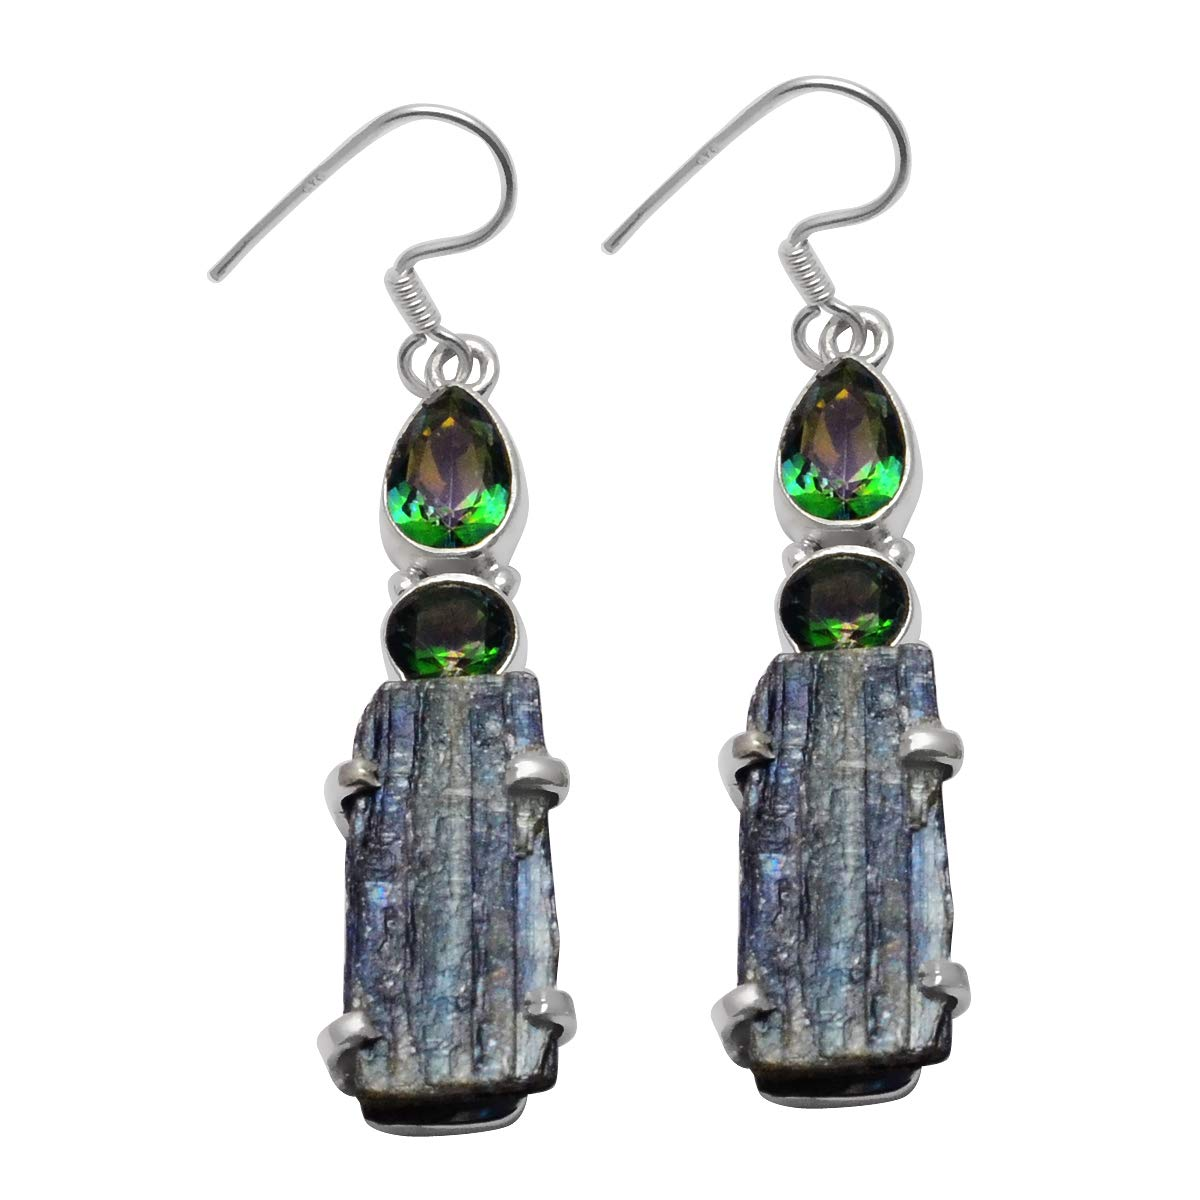 Silver Palace 925 Sterling Silver Handmade Kyanite Mystic topaz Earrings for Womens and Girls